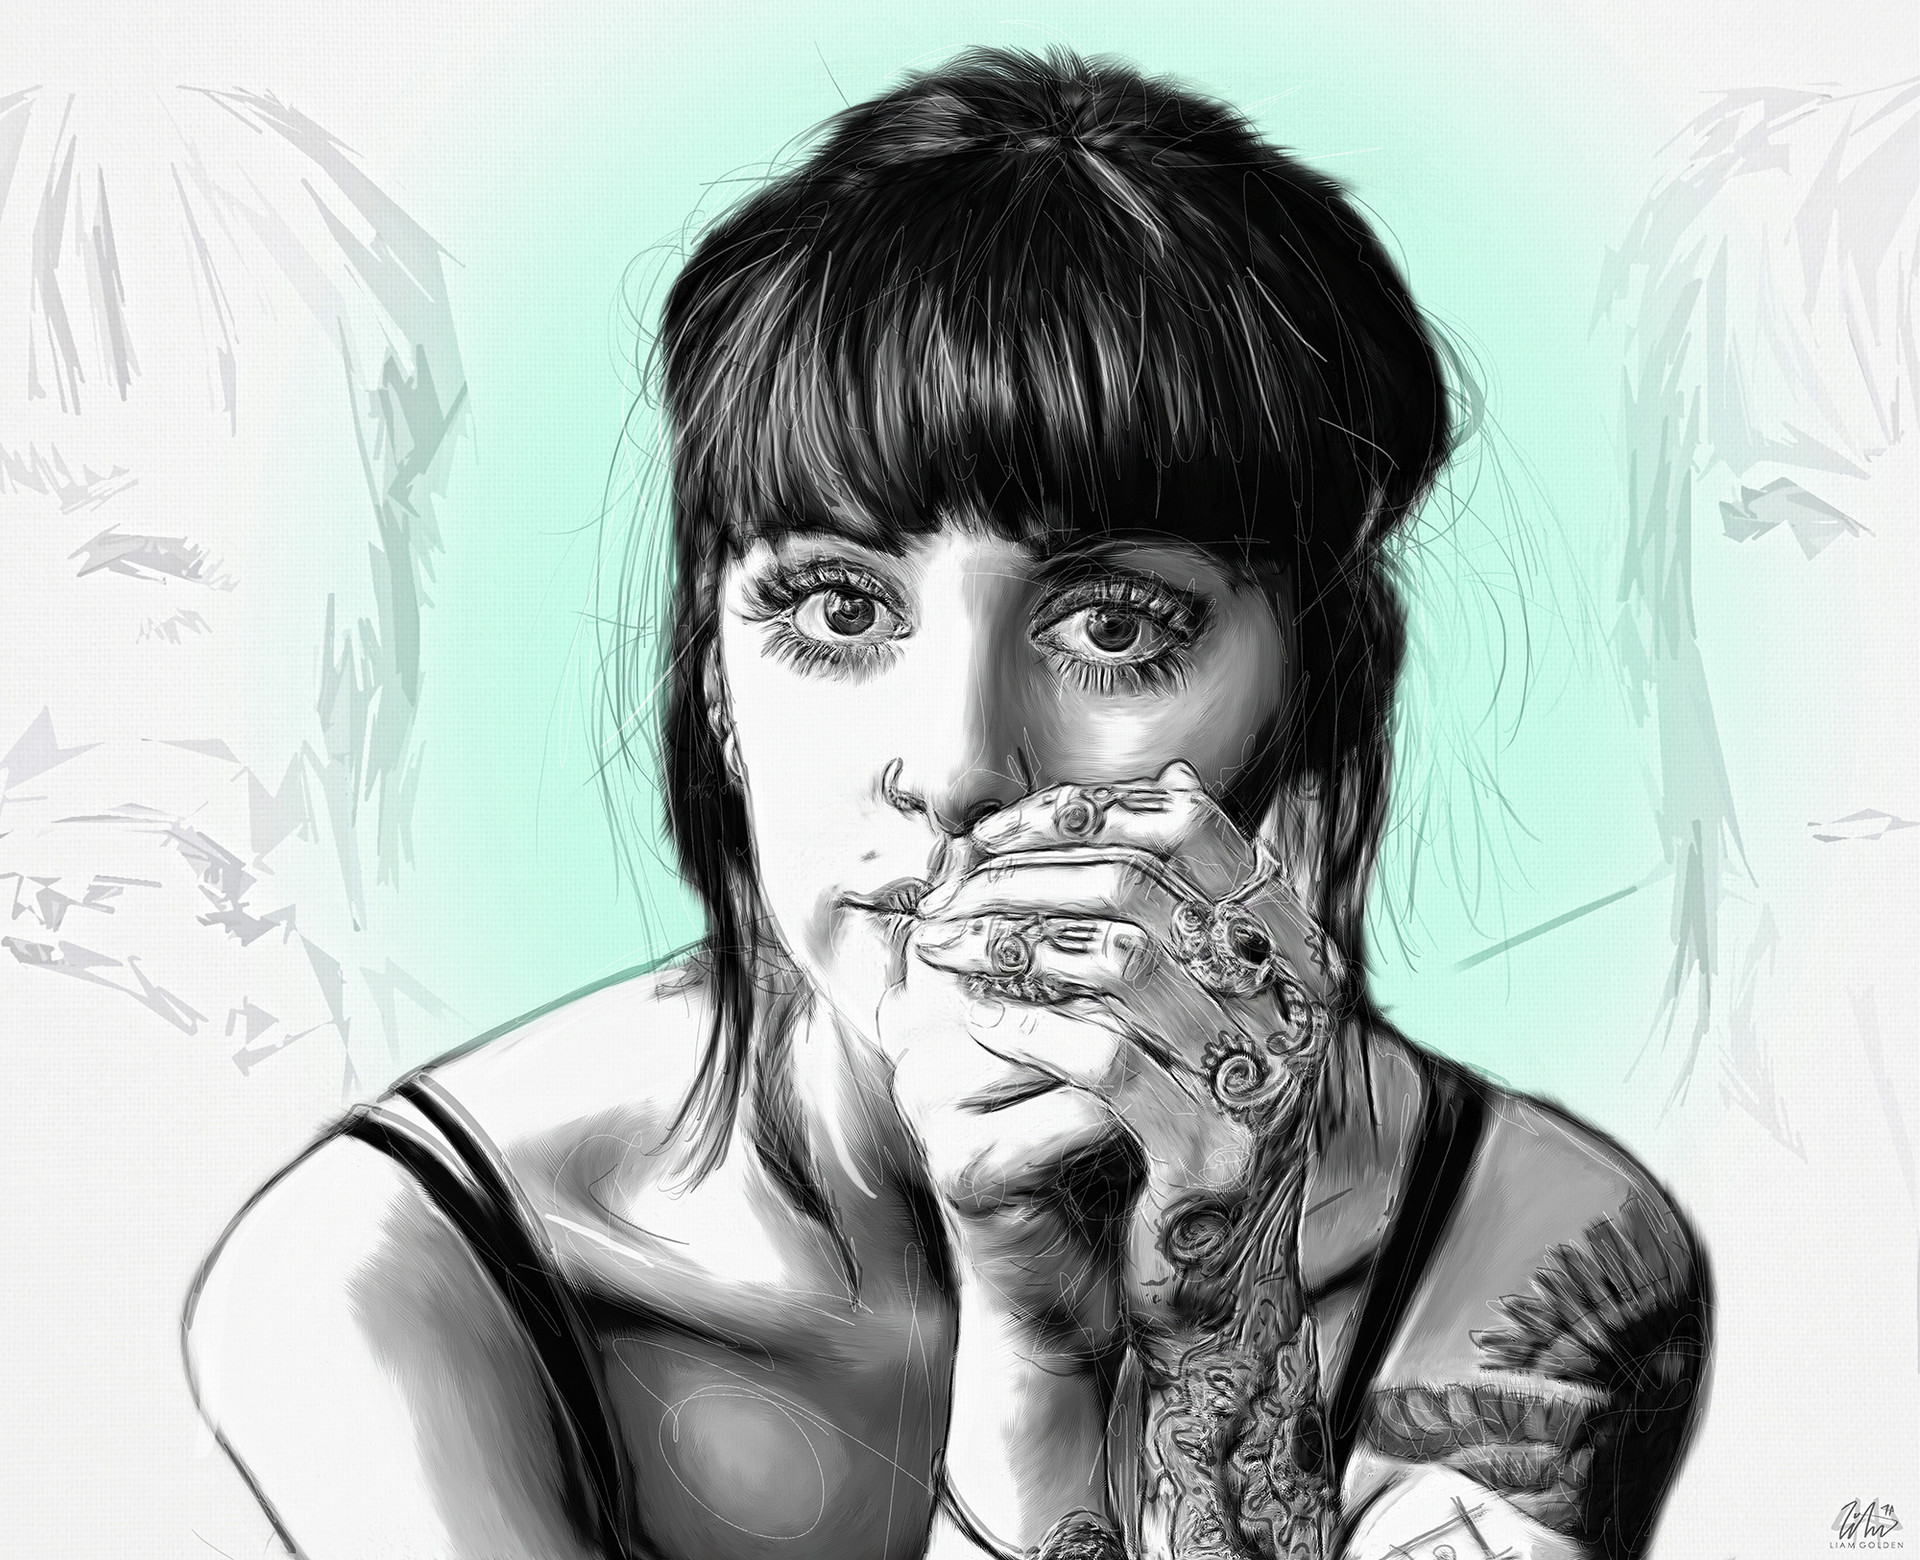 Liam golden hannah snowdon gaze new2014 updated smallll